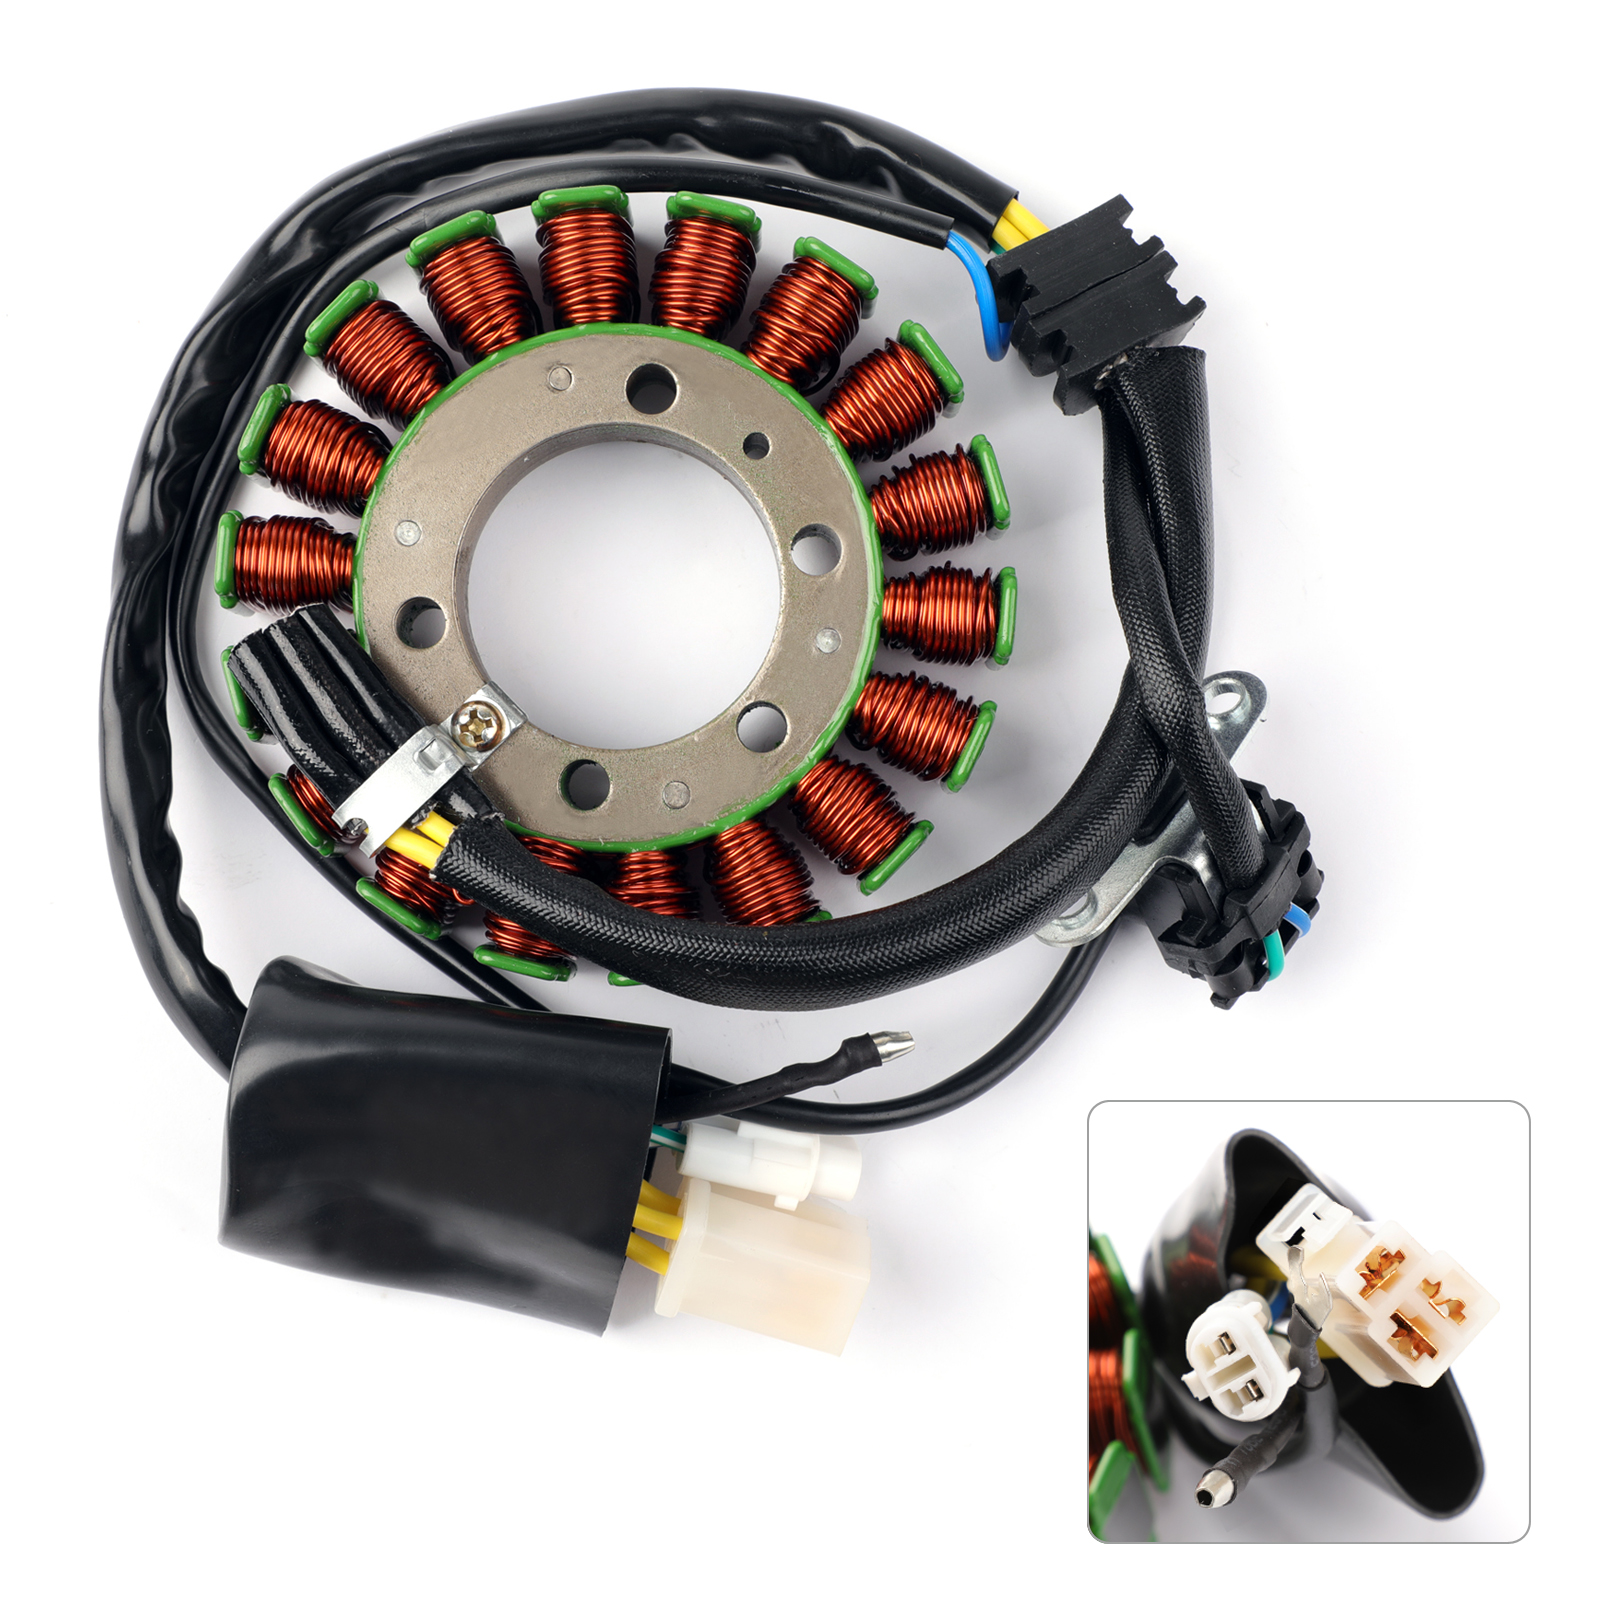 Areyourshop for Yamaha XT660 XT660R/X 2004-2014 <font><b>XT660Z</b></font> Tenere 08-15 Magneto Generator Engine Stator Coil image